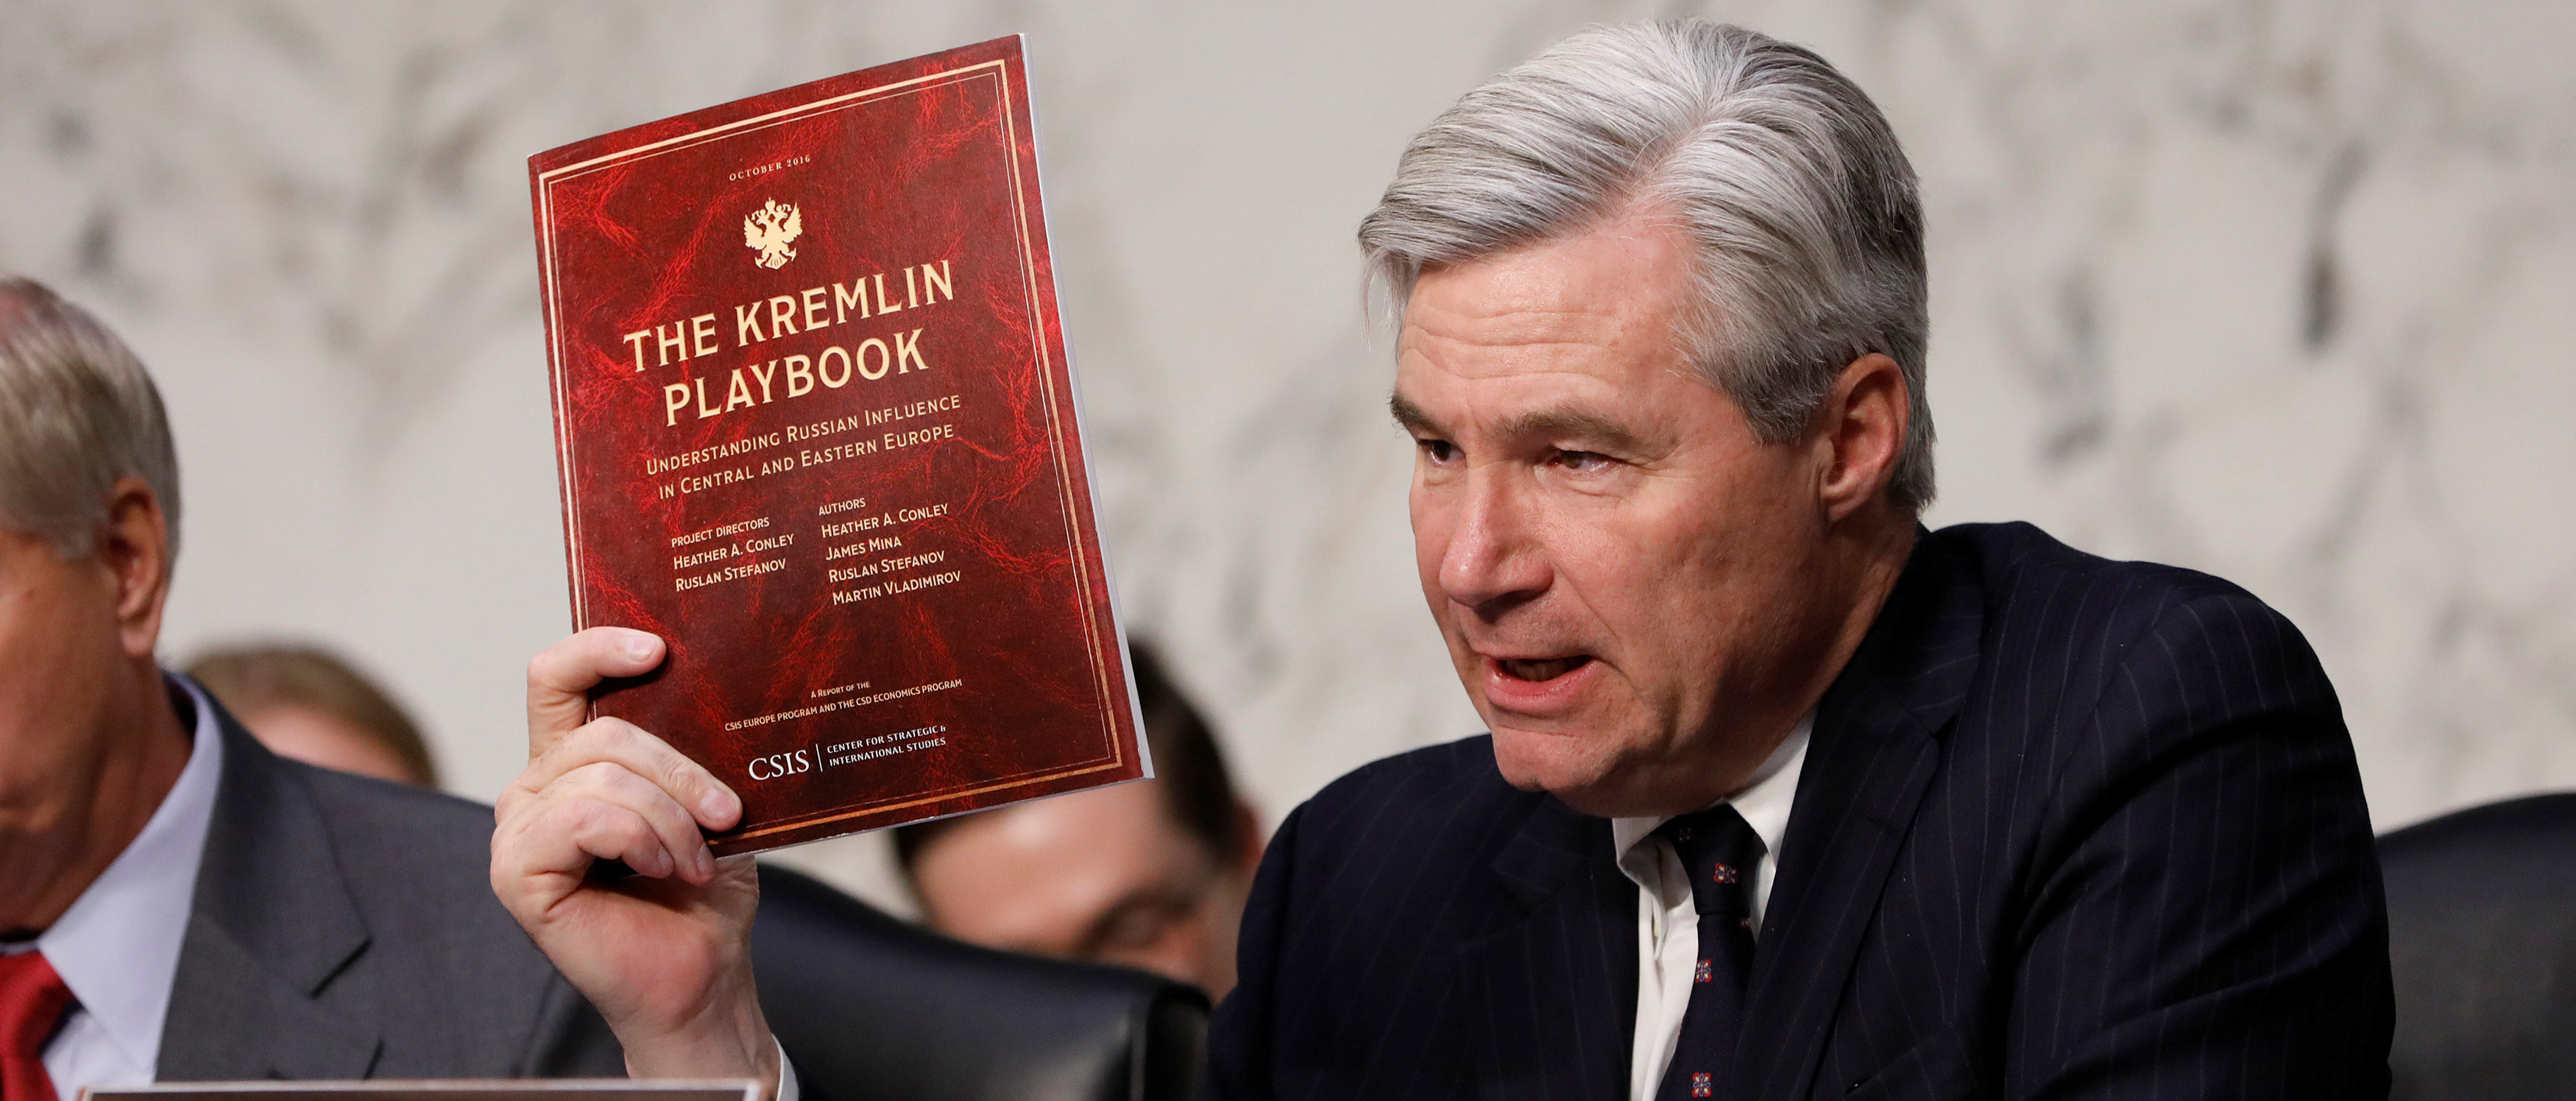 Sen. Sheldon Whitehouse (D-RI) asks a question as former acting Attorney General Sally Yates testifies about potential Russian interference in the presidential election before the Senate Judiciary Committee on Capitol Hill Washington, D.C., U.S. May 8, 2017. REUTERS/Aaron P. Bernstein | TPX IMAGES OF THE DAY